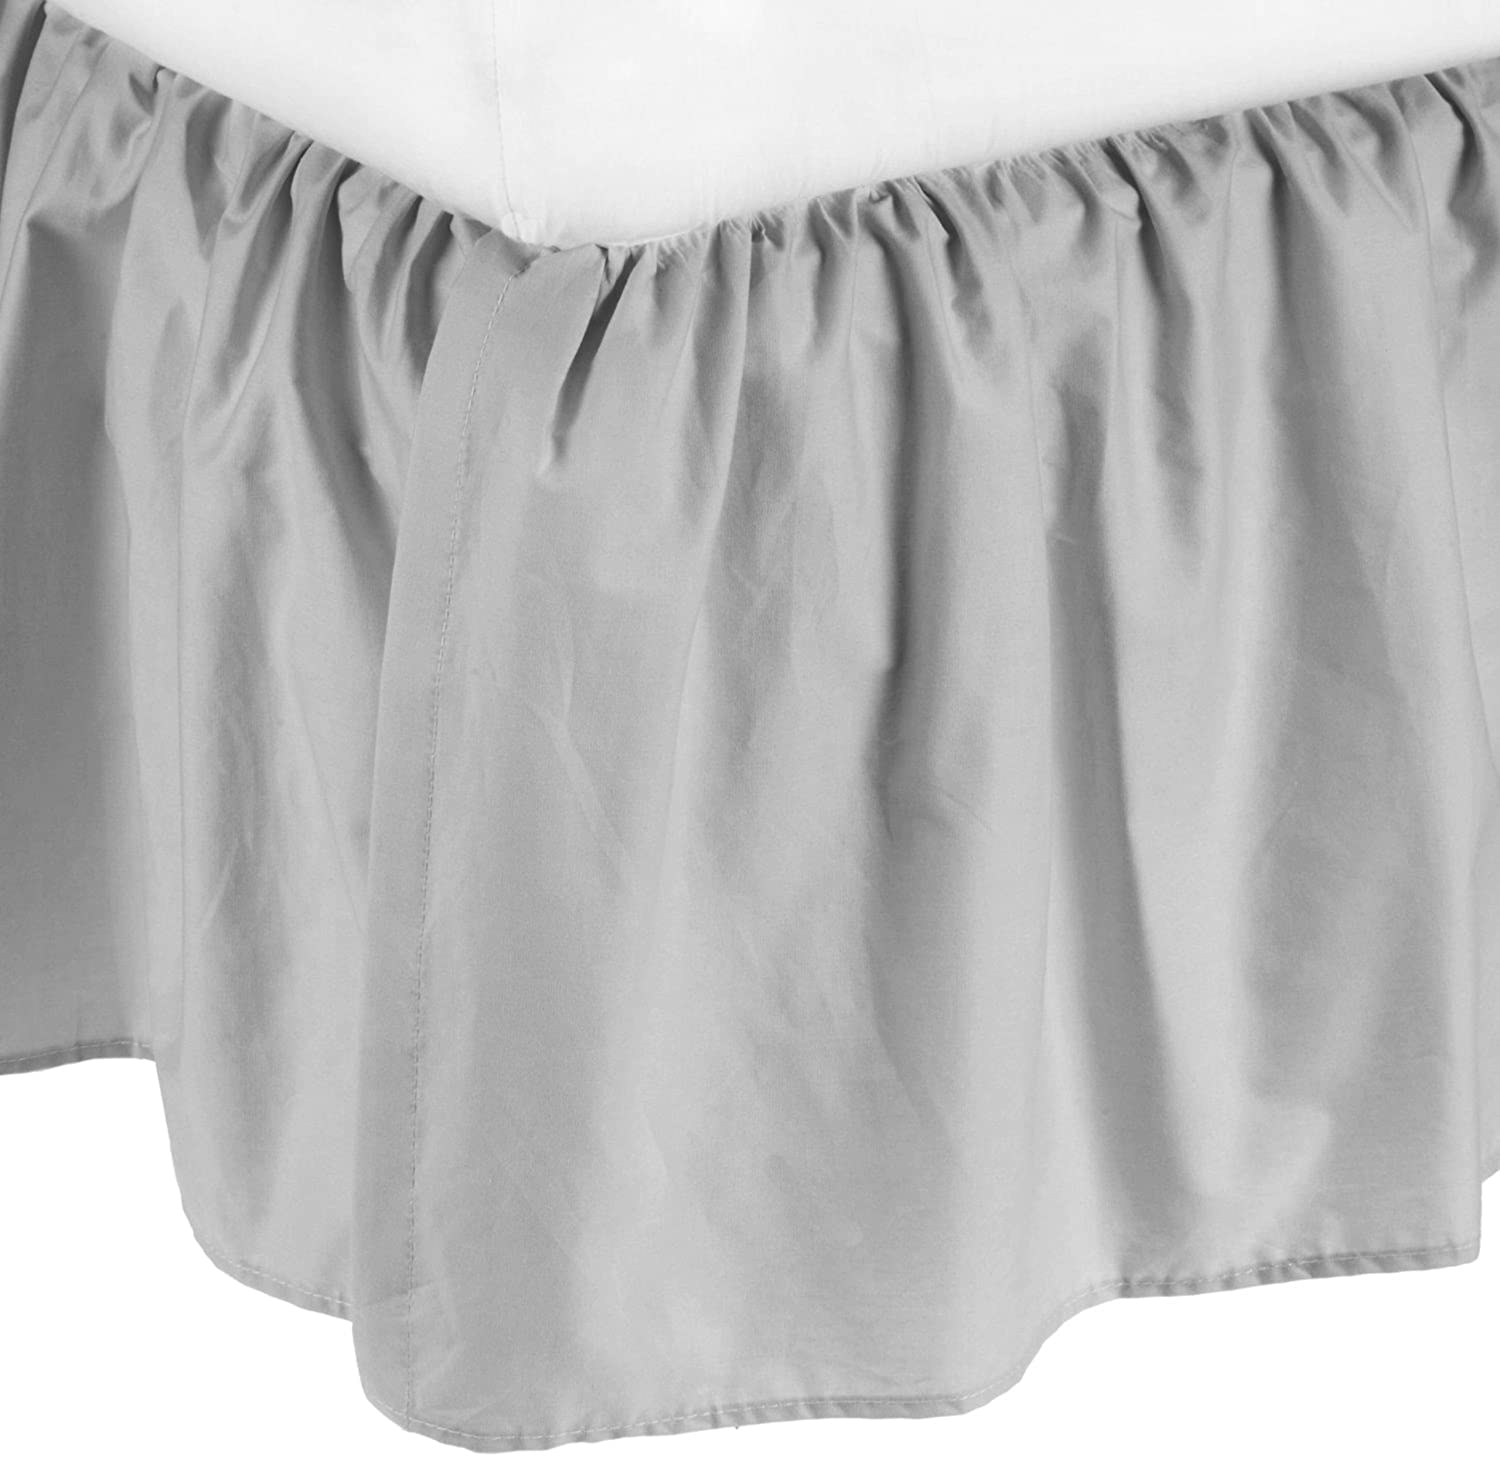 amazoncom  american baby company  cotton percale portable  - amazoncom  american baby company  cotton percale portable mini cribskirt gray  portable bedding  baby